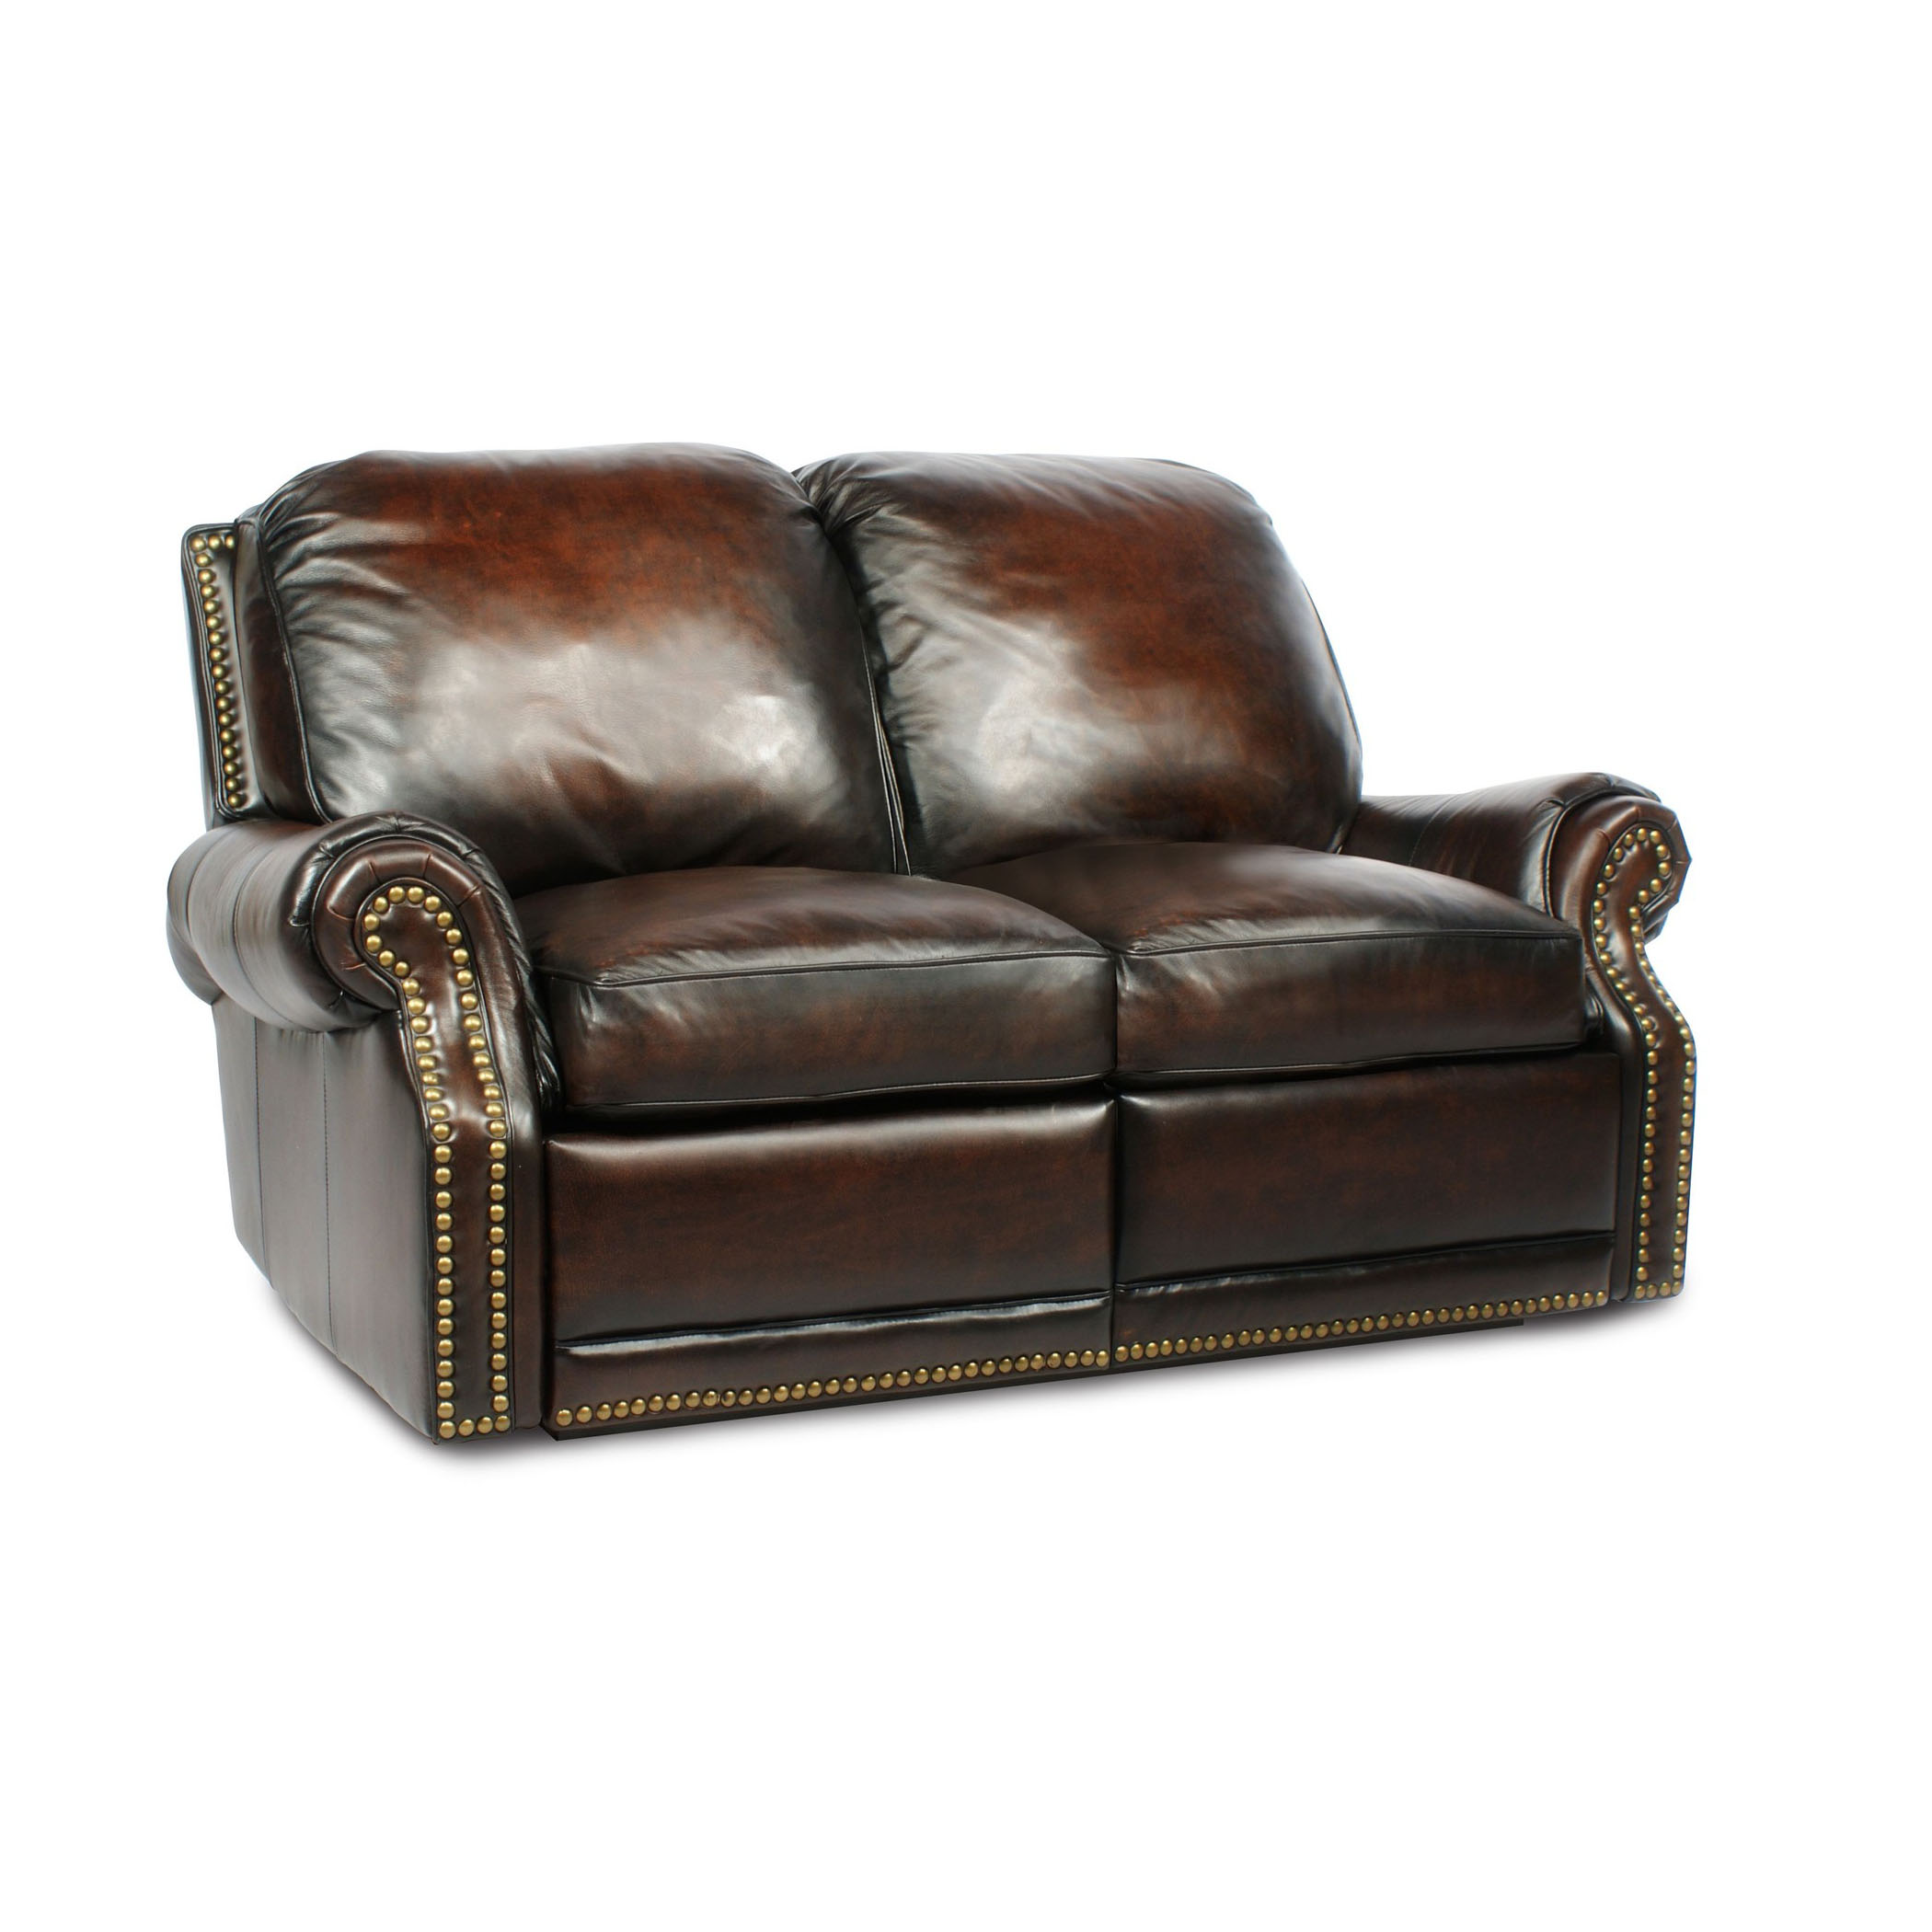 Barcalounger premier ii leather 2 seat loveseat sofa for Leather reclining sofa